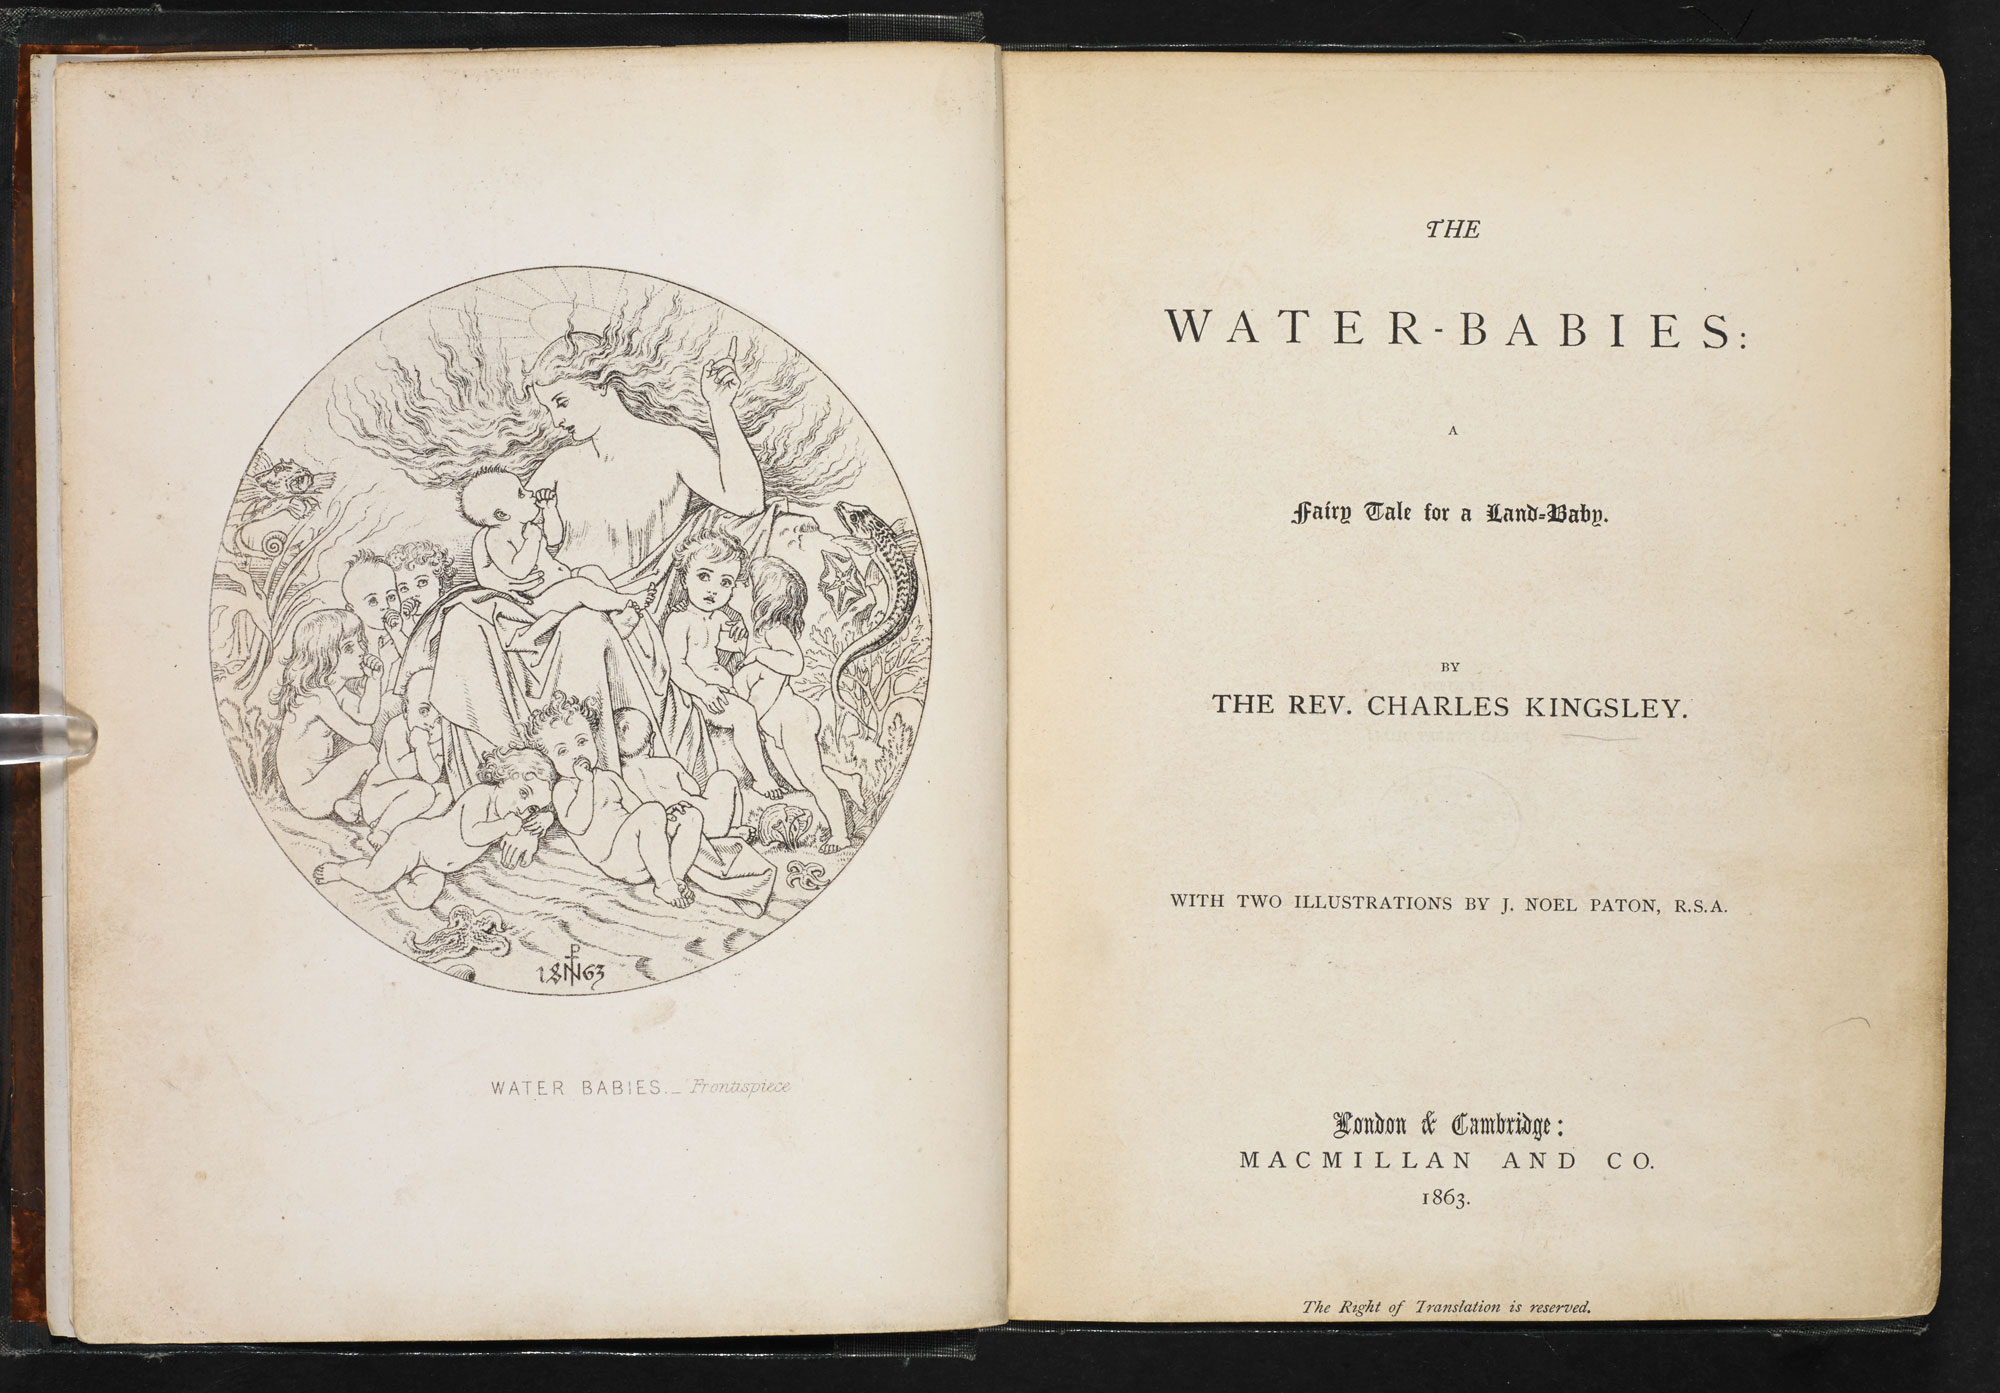 Charles Kingsley's The Water-Babies [page: frontispiece and title page]